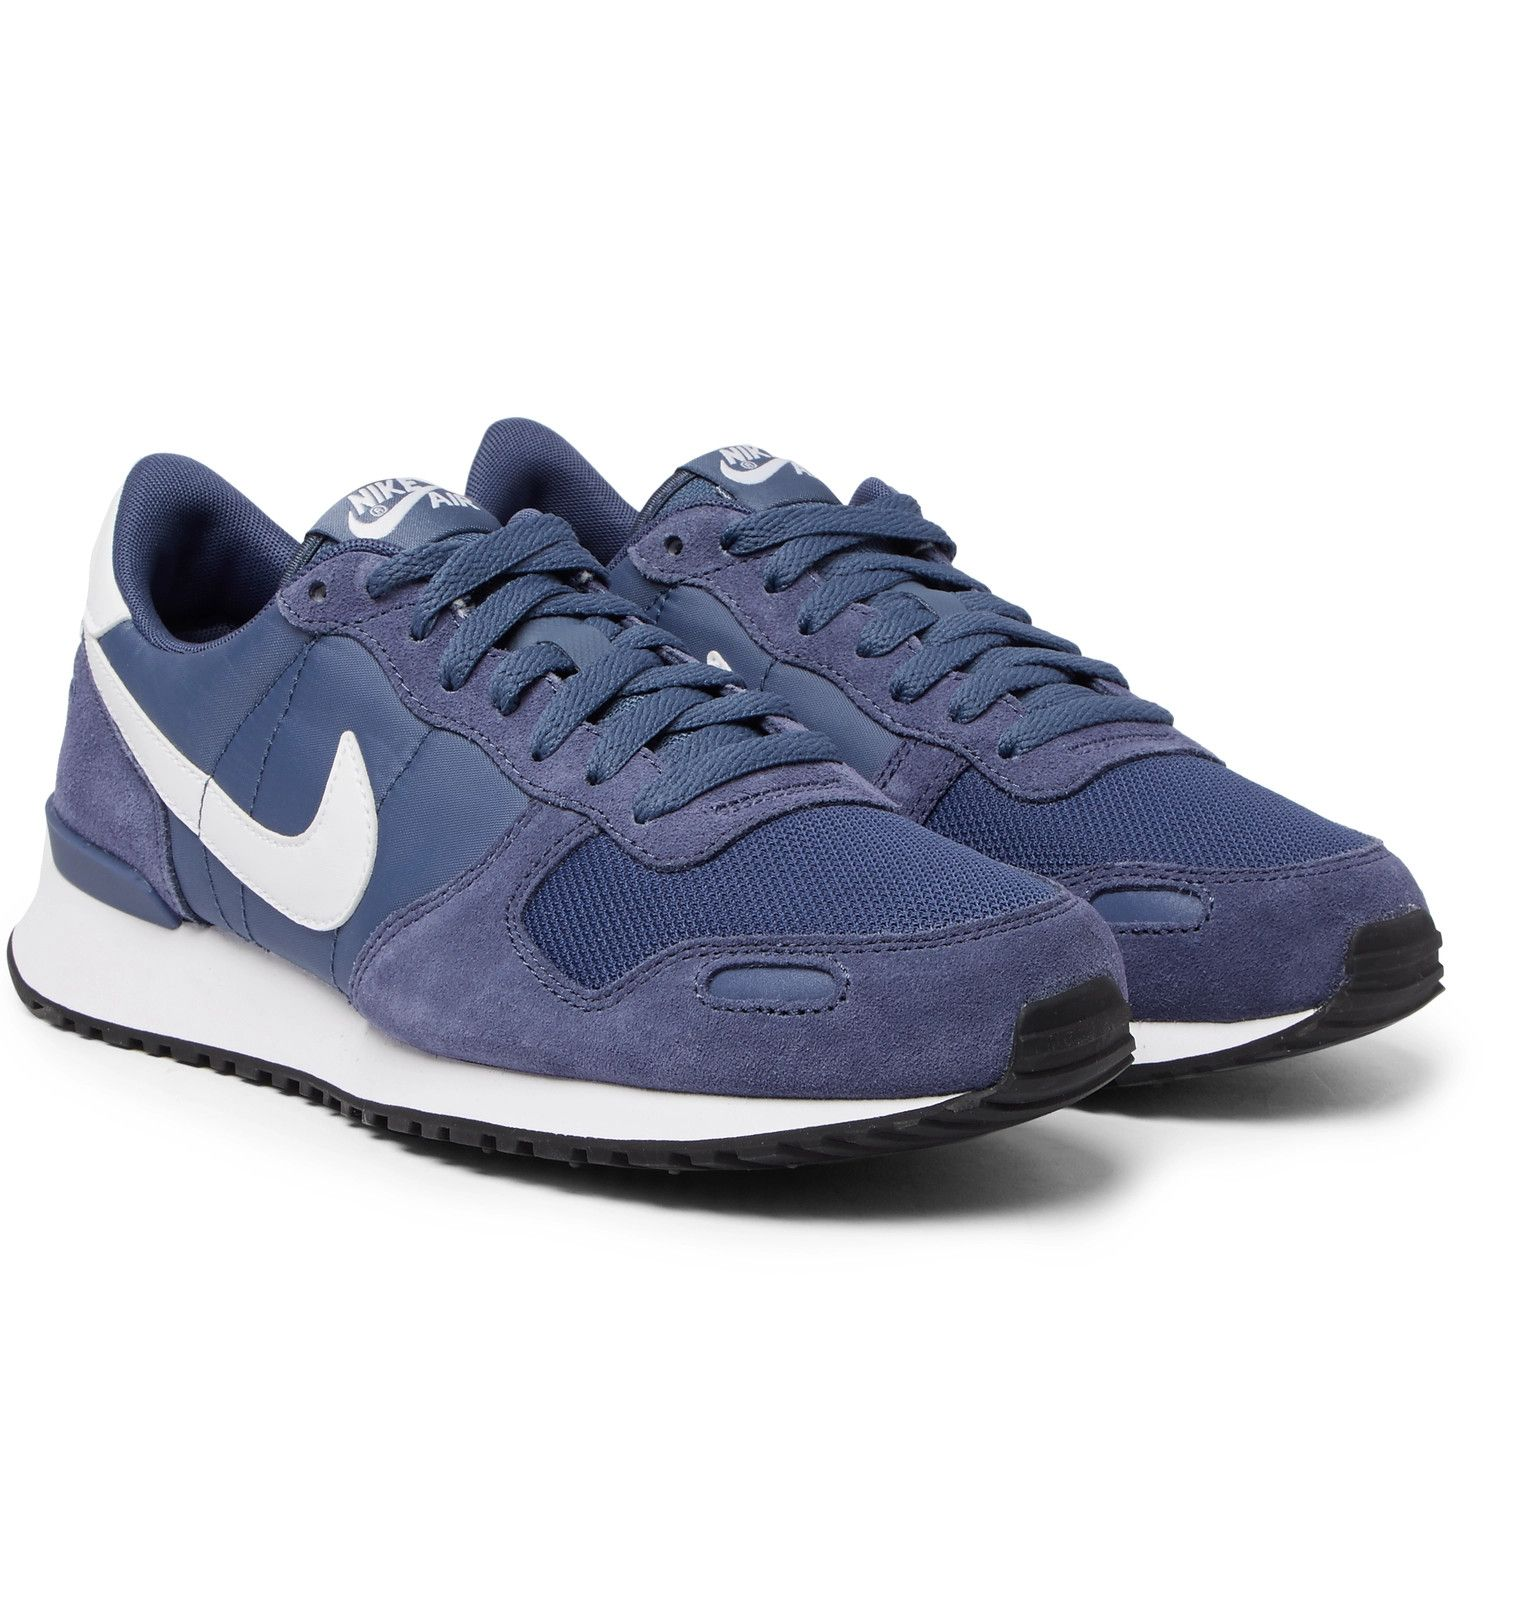 100% authentic online here best sneakers Nike - Air Vortex Suede, Nylon and Mesh Sneakers | Shoes in ...